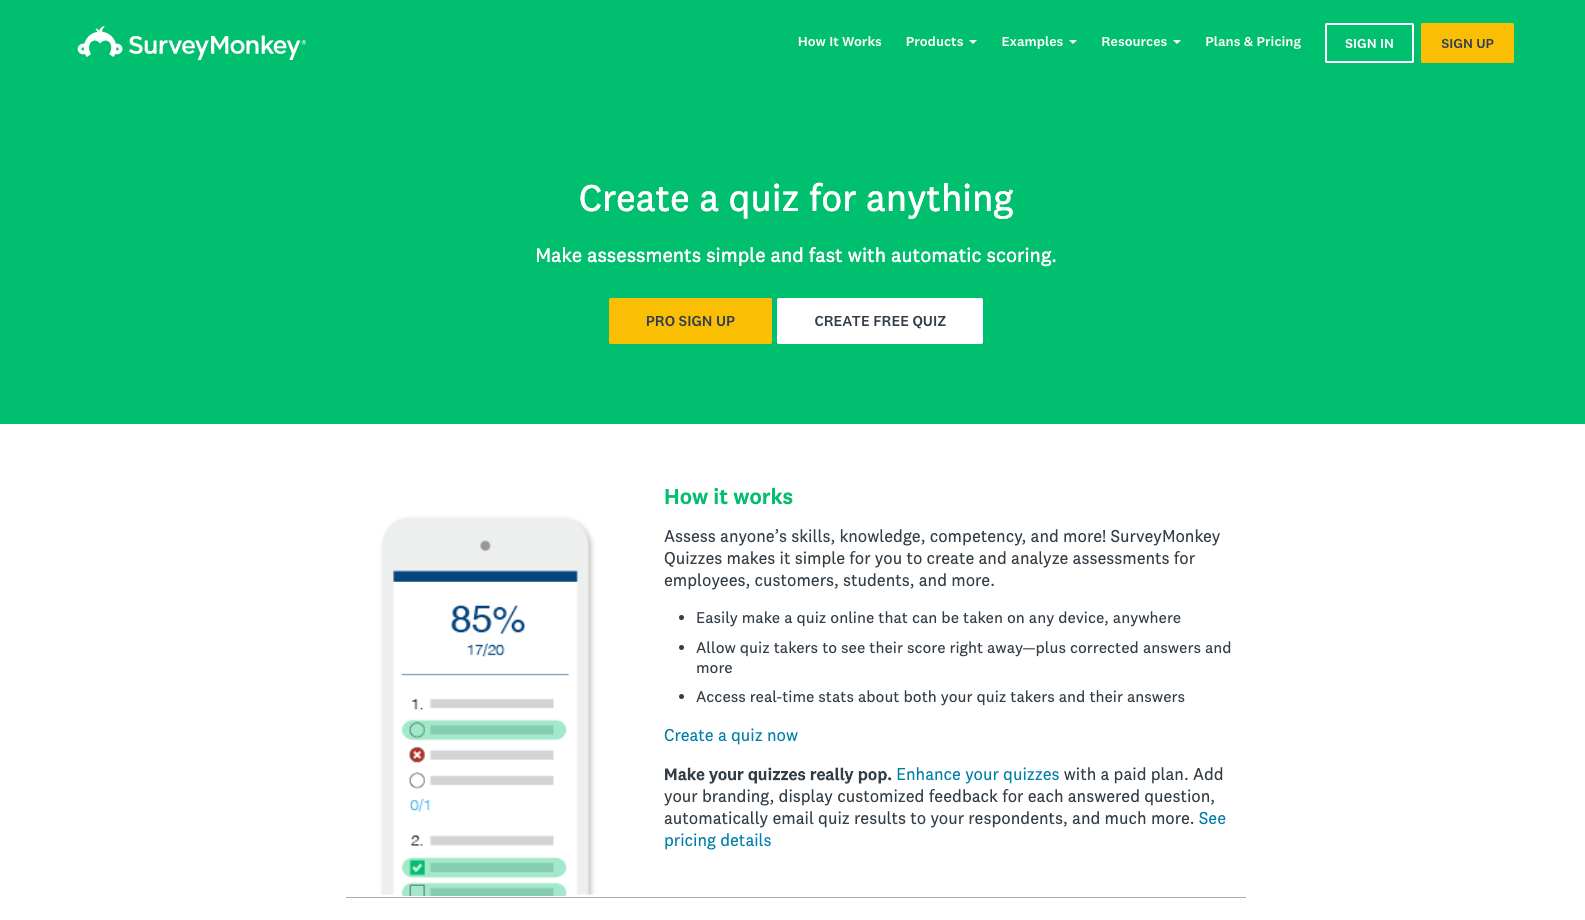 SurveyMonkey-Content-Creation-Tools